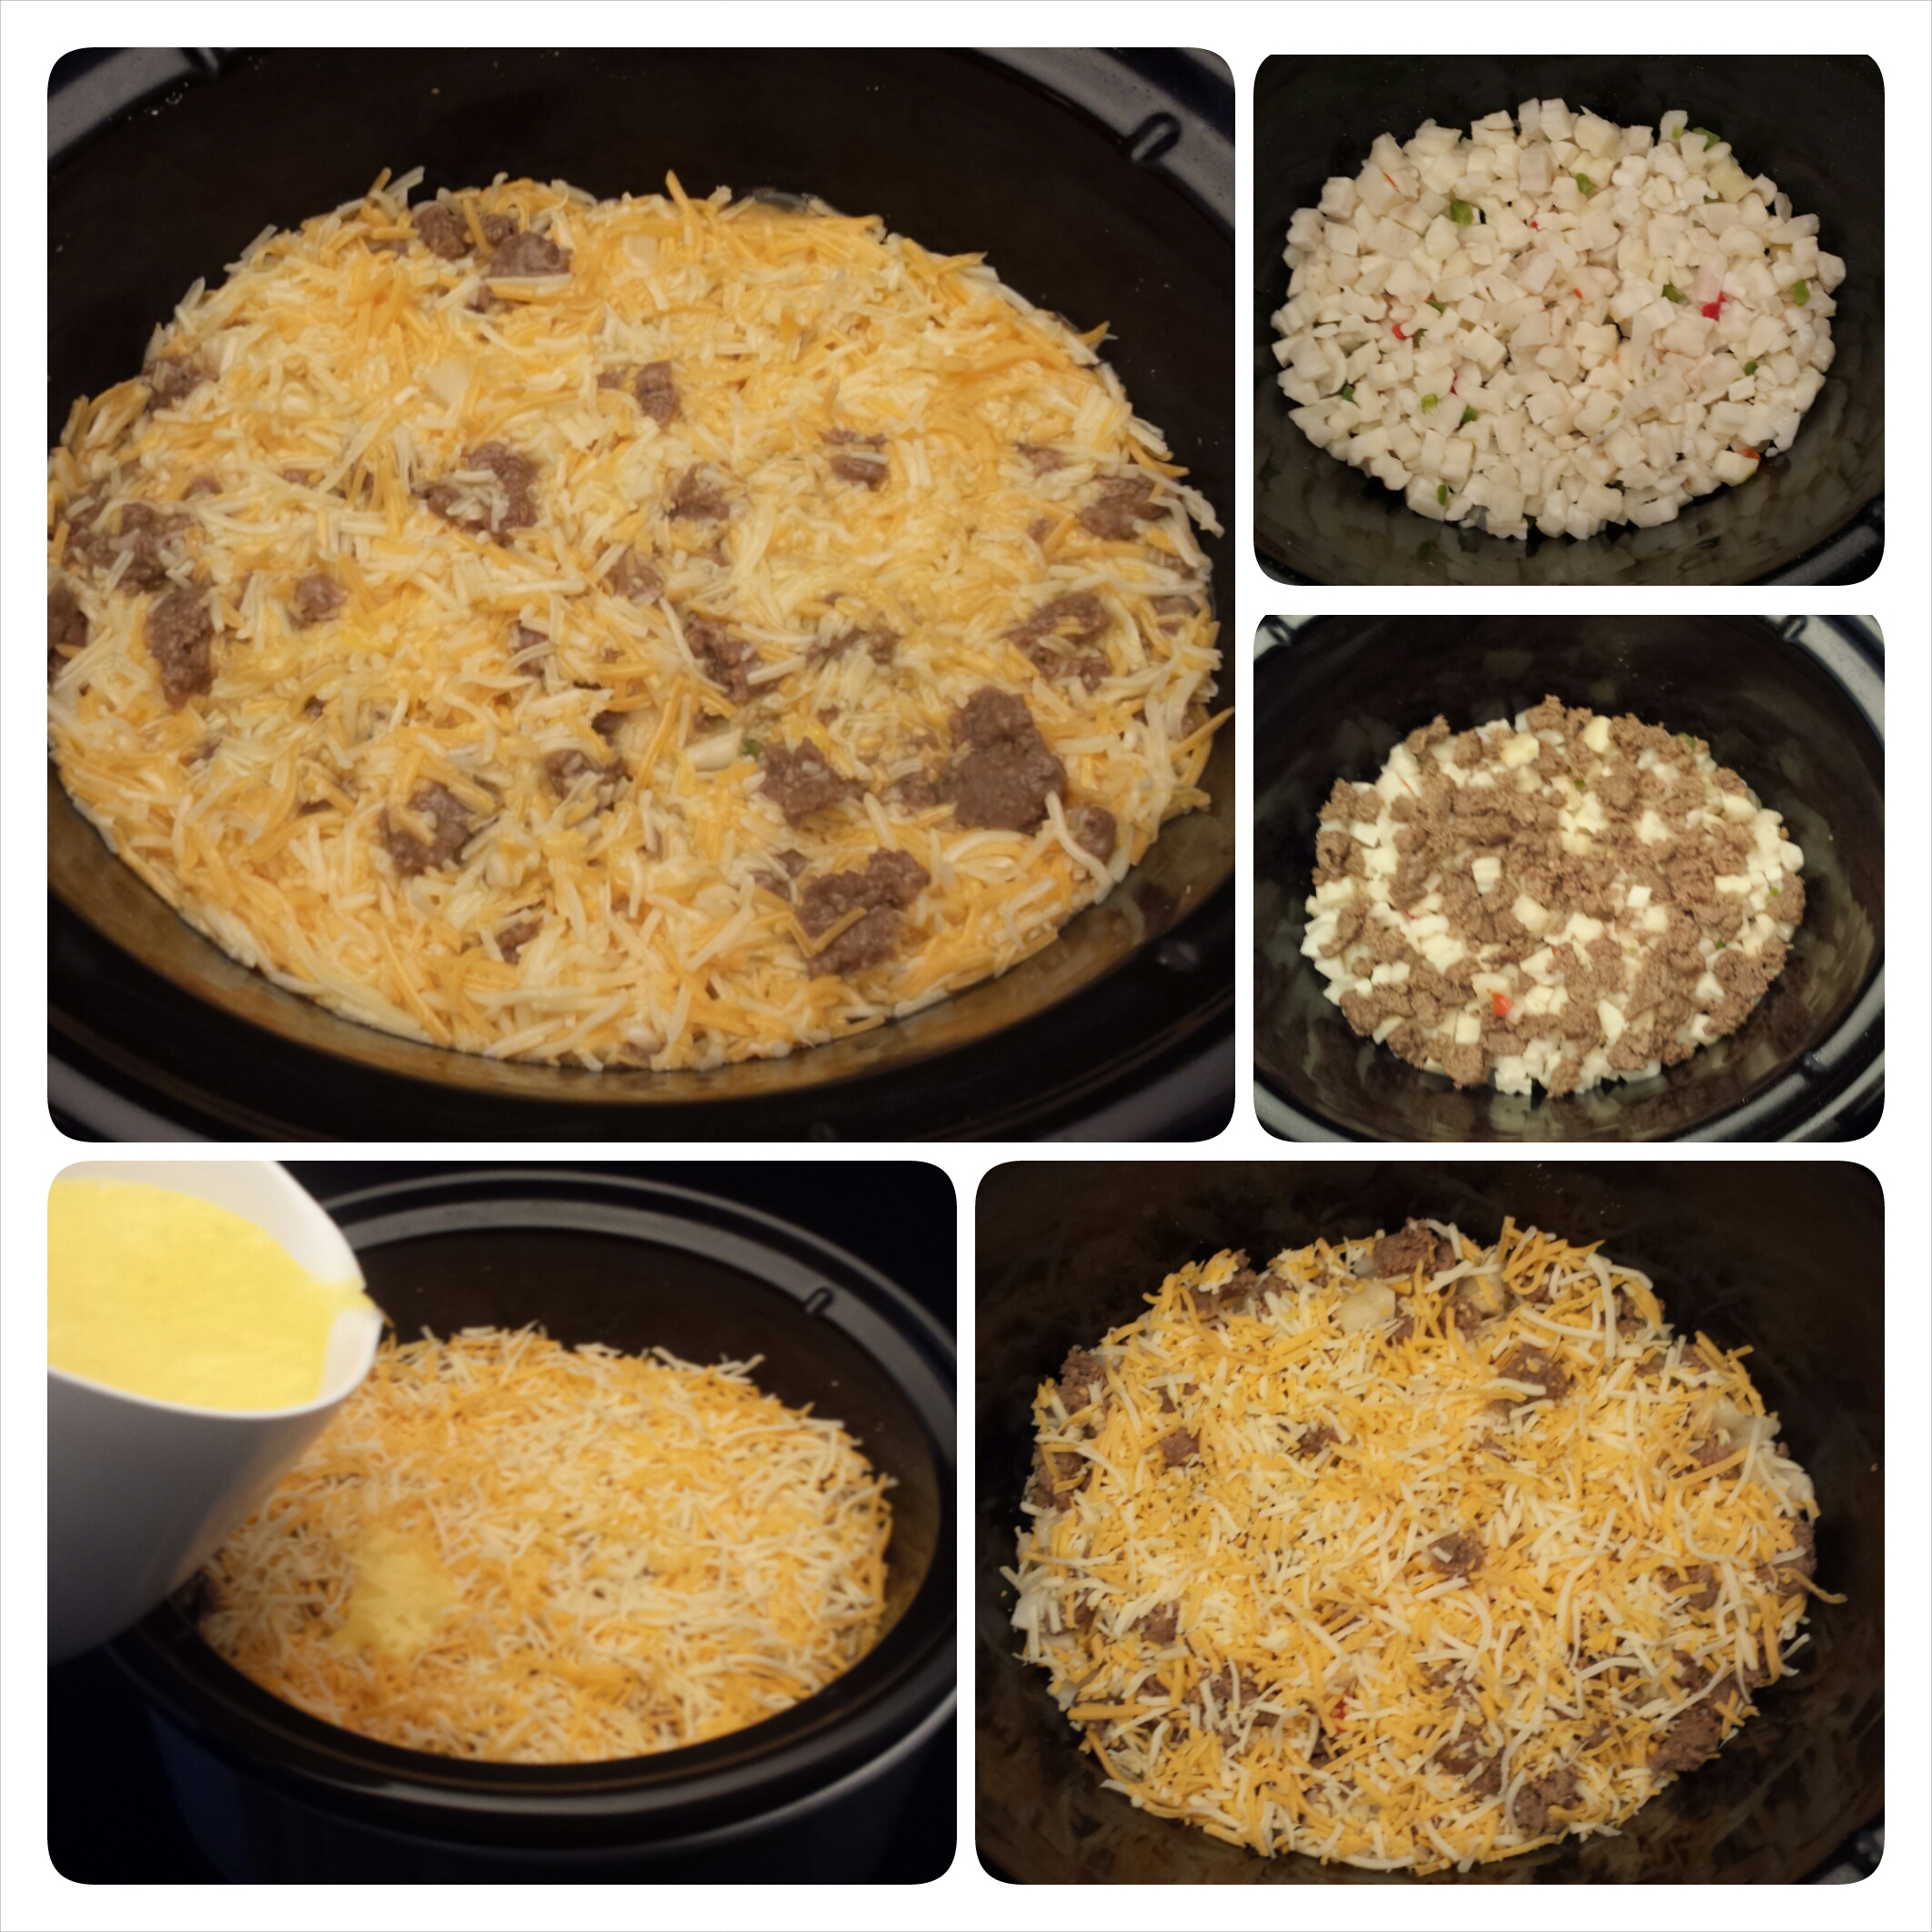 Slow Cooker Sausage & Cheese Breakfast Casserole